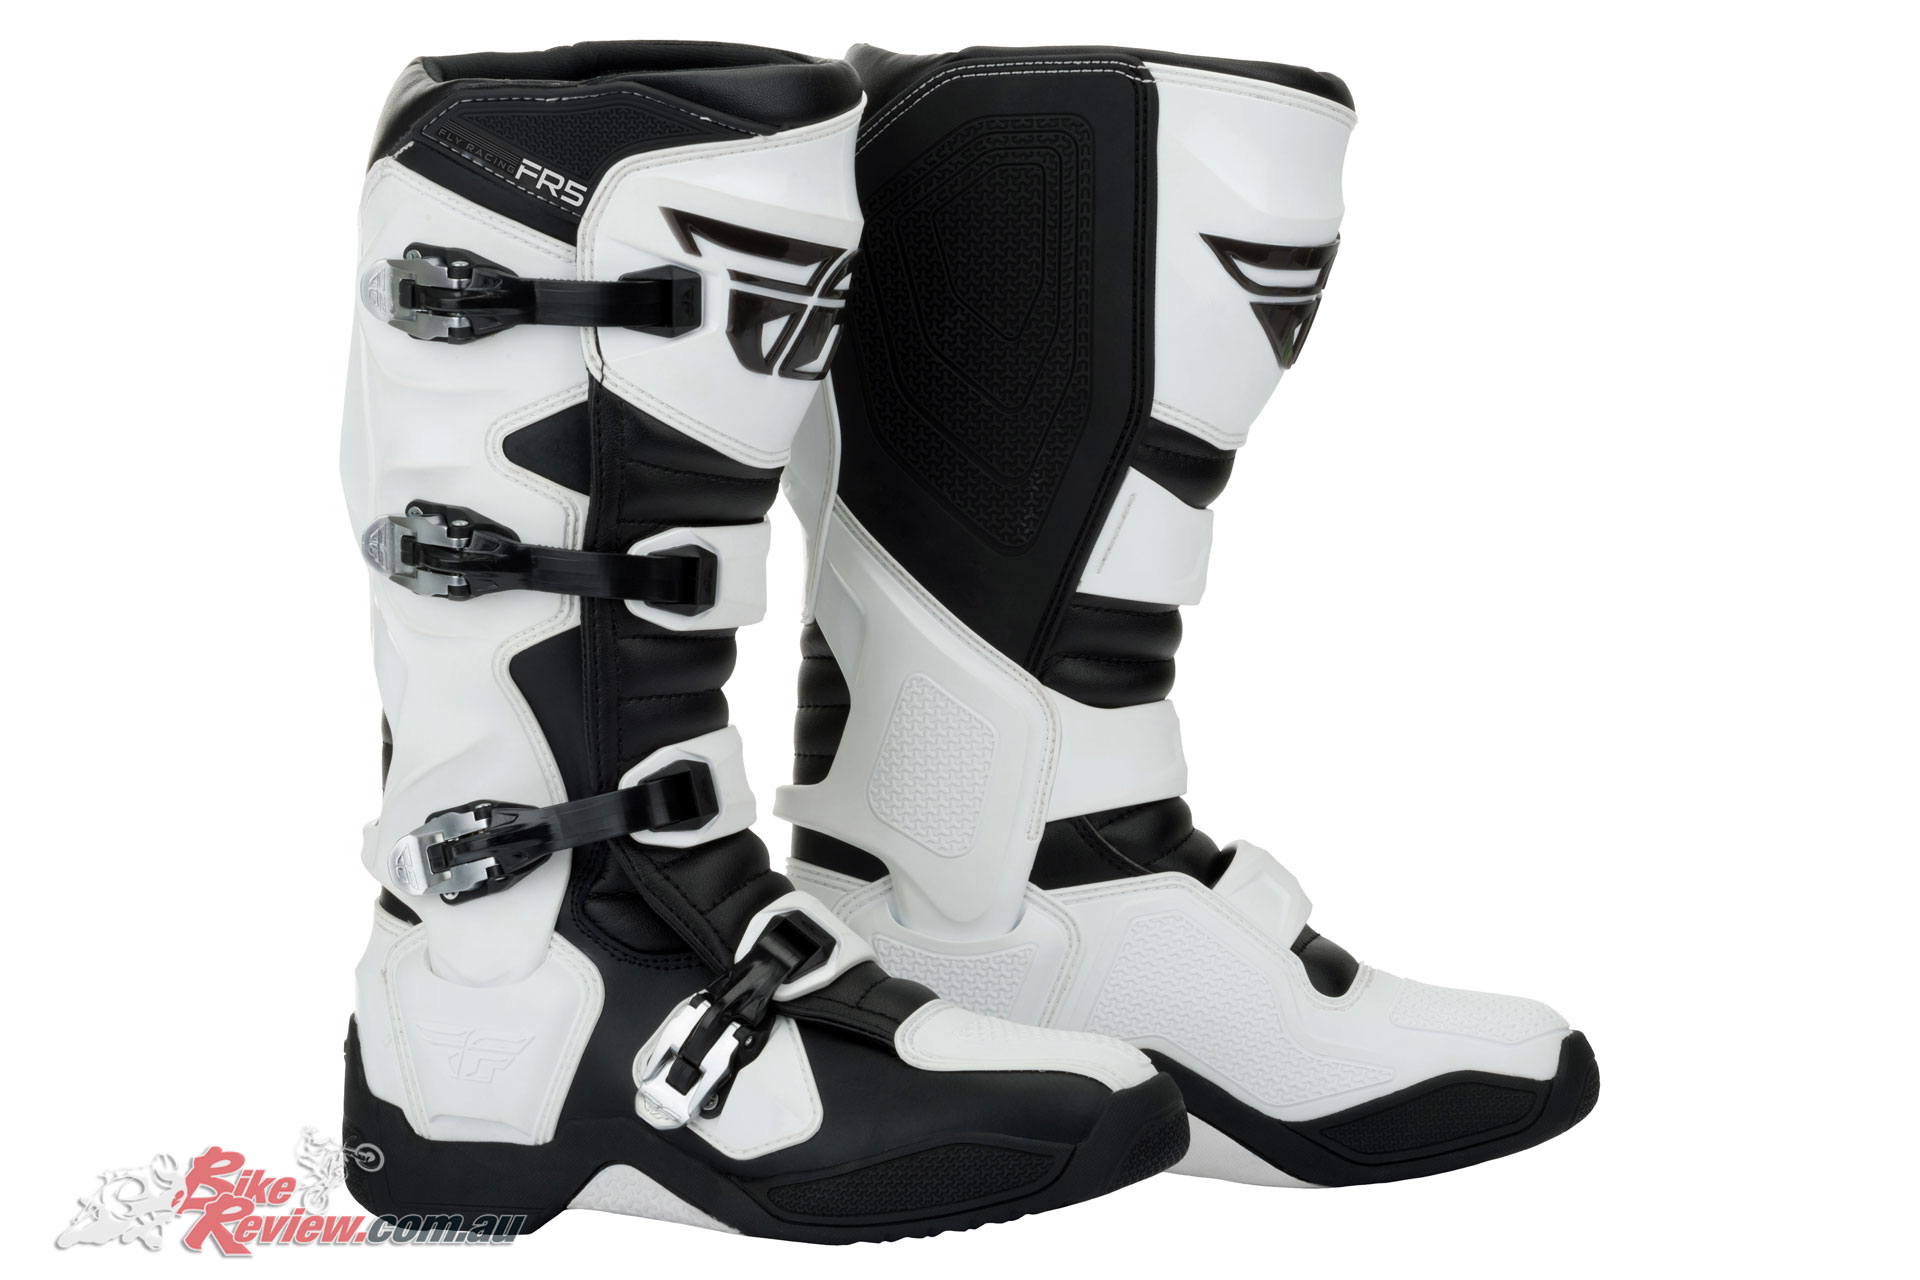 2019 Fly Racing FR-5 Boots now available!